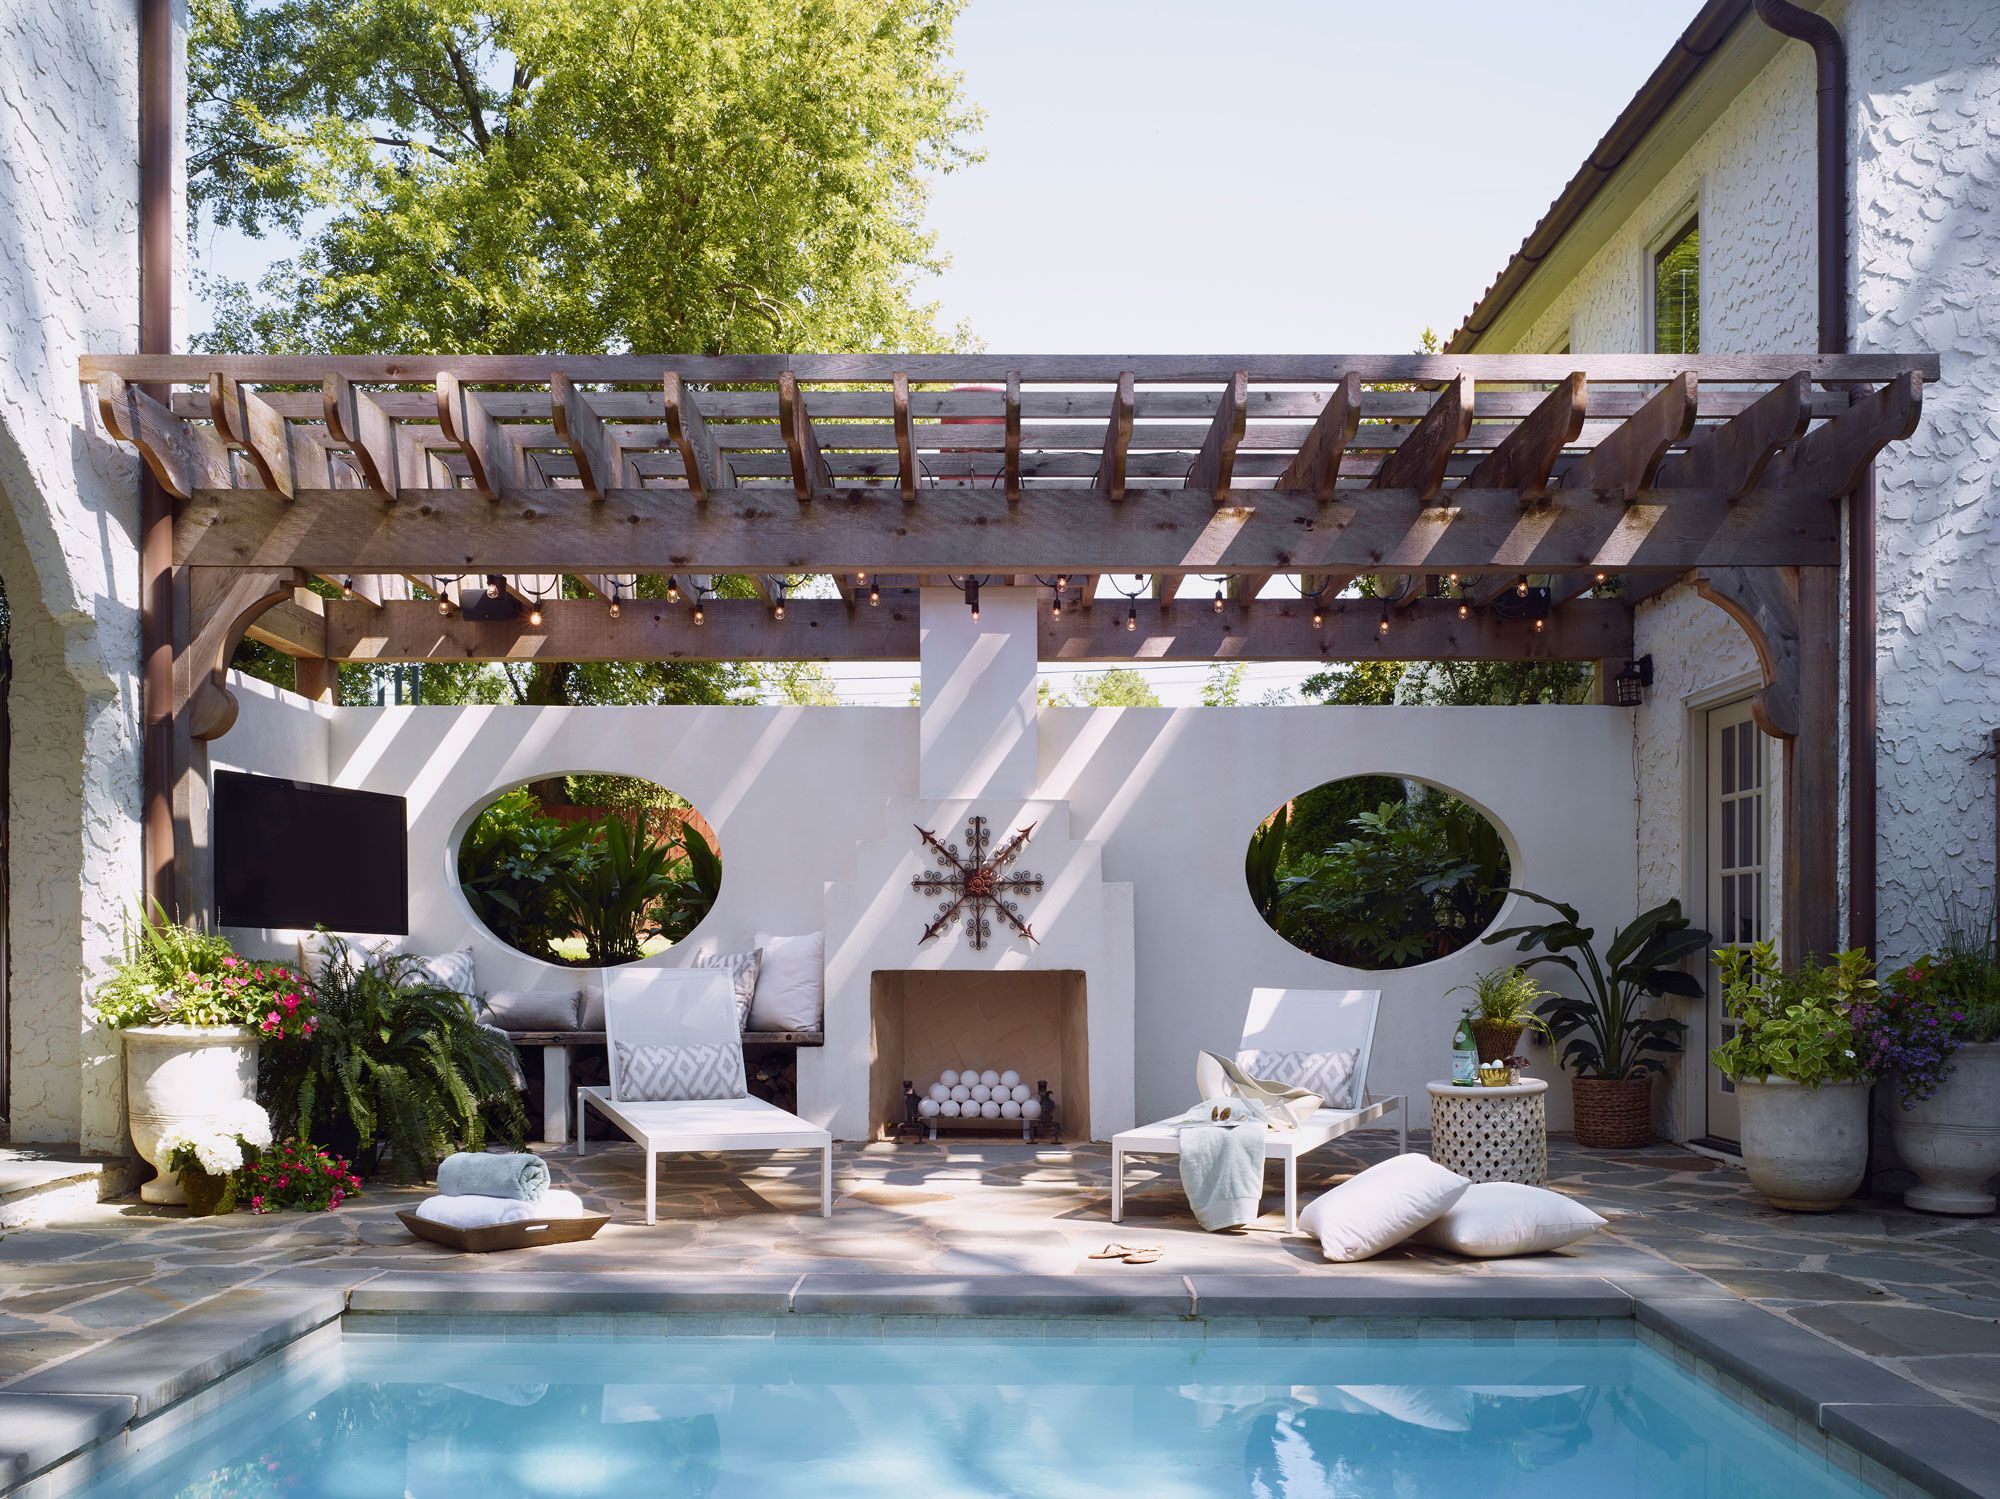 Spanish Colonial Pool Terrace Pool Deck Outdoor